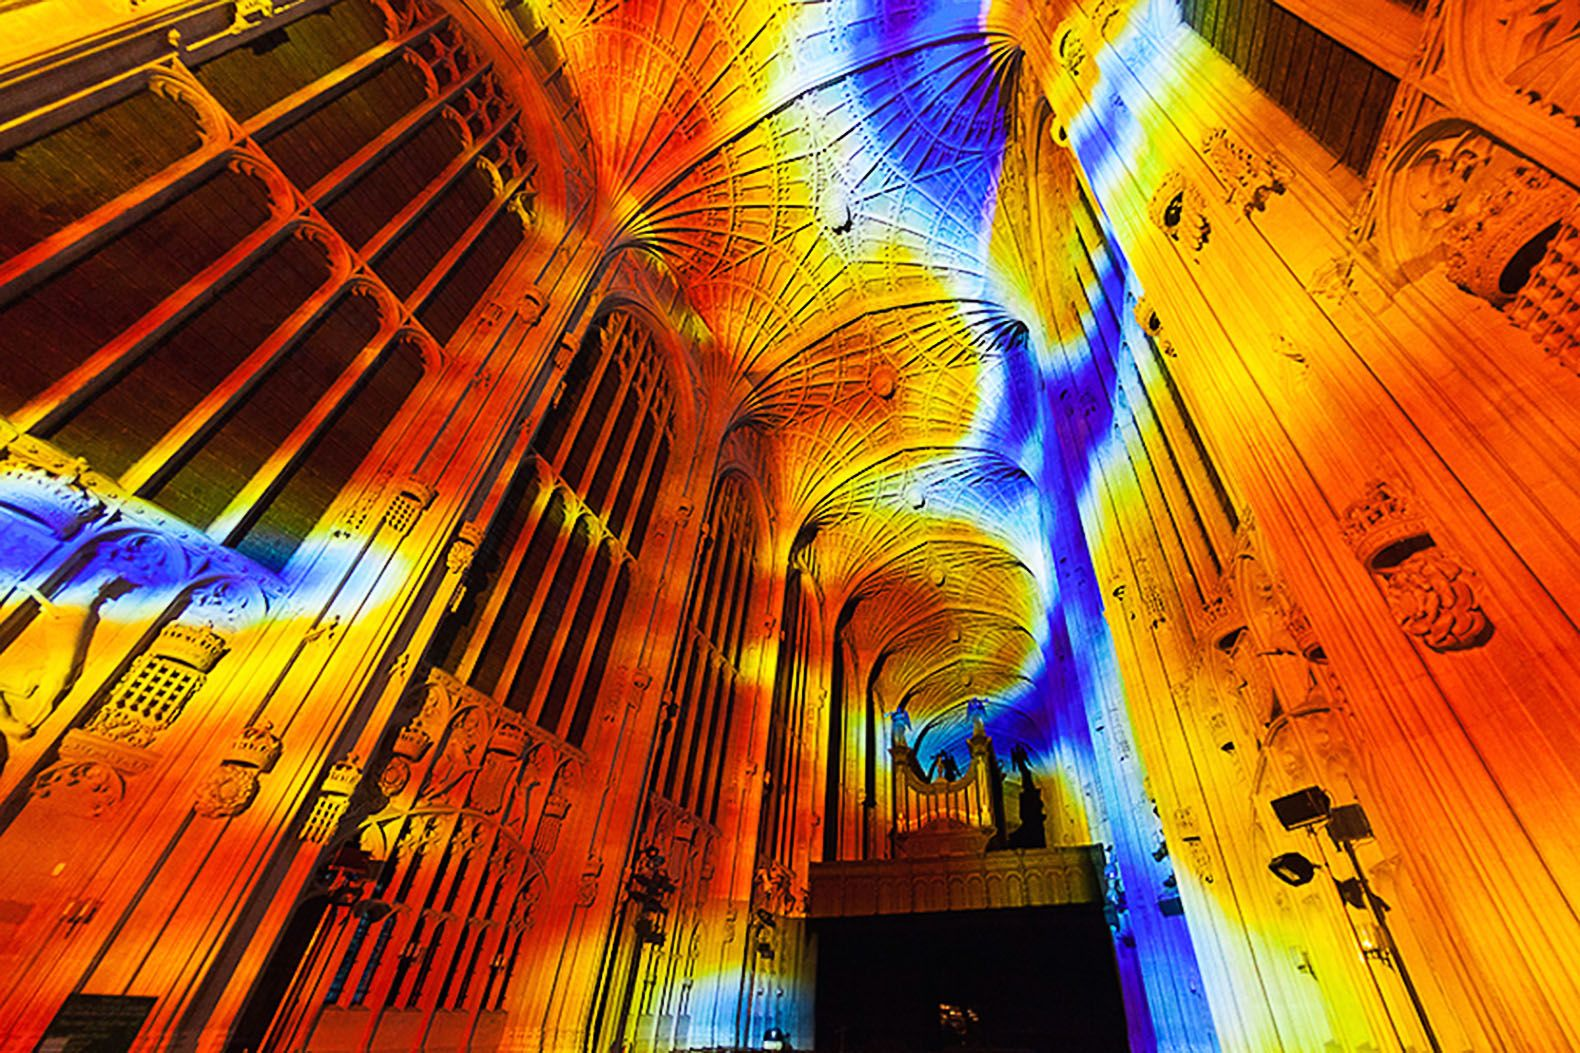 Miguel Chevalier Projects A Universe Of Light Inside A Cambridge - Projection mapping turns chapel into stunning work of contemporary art